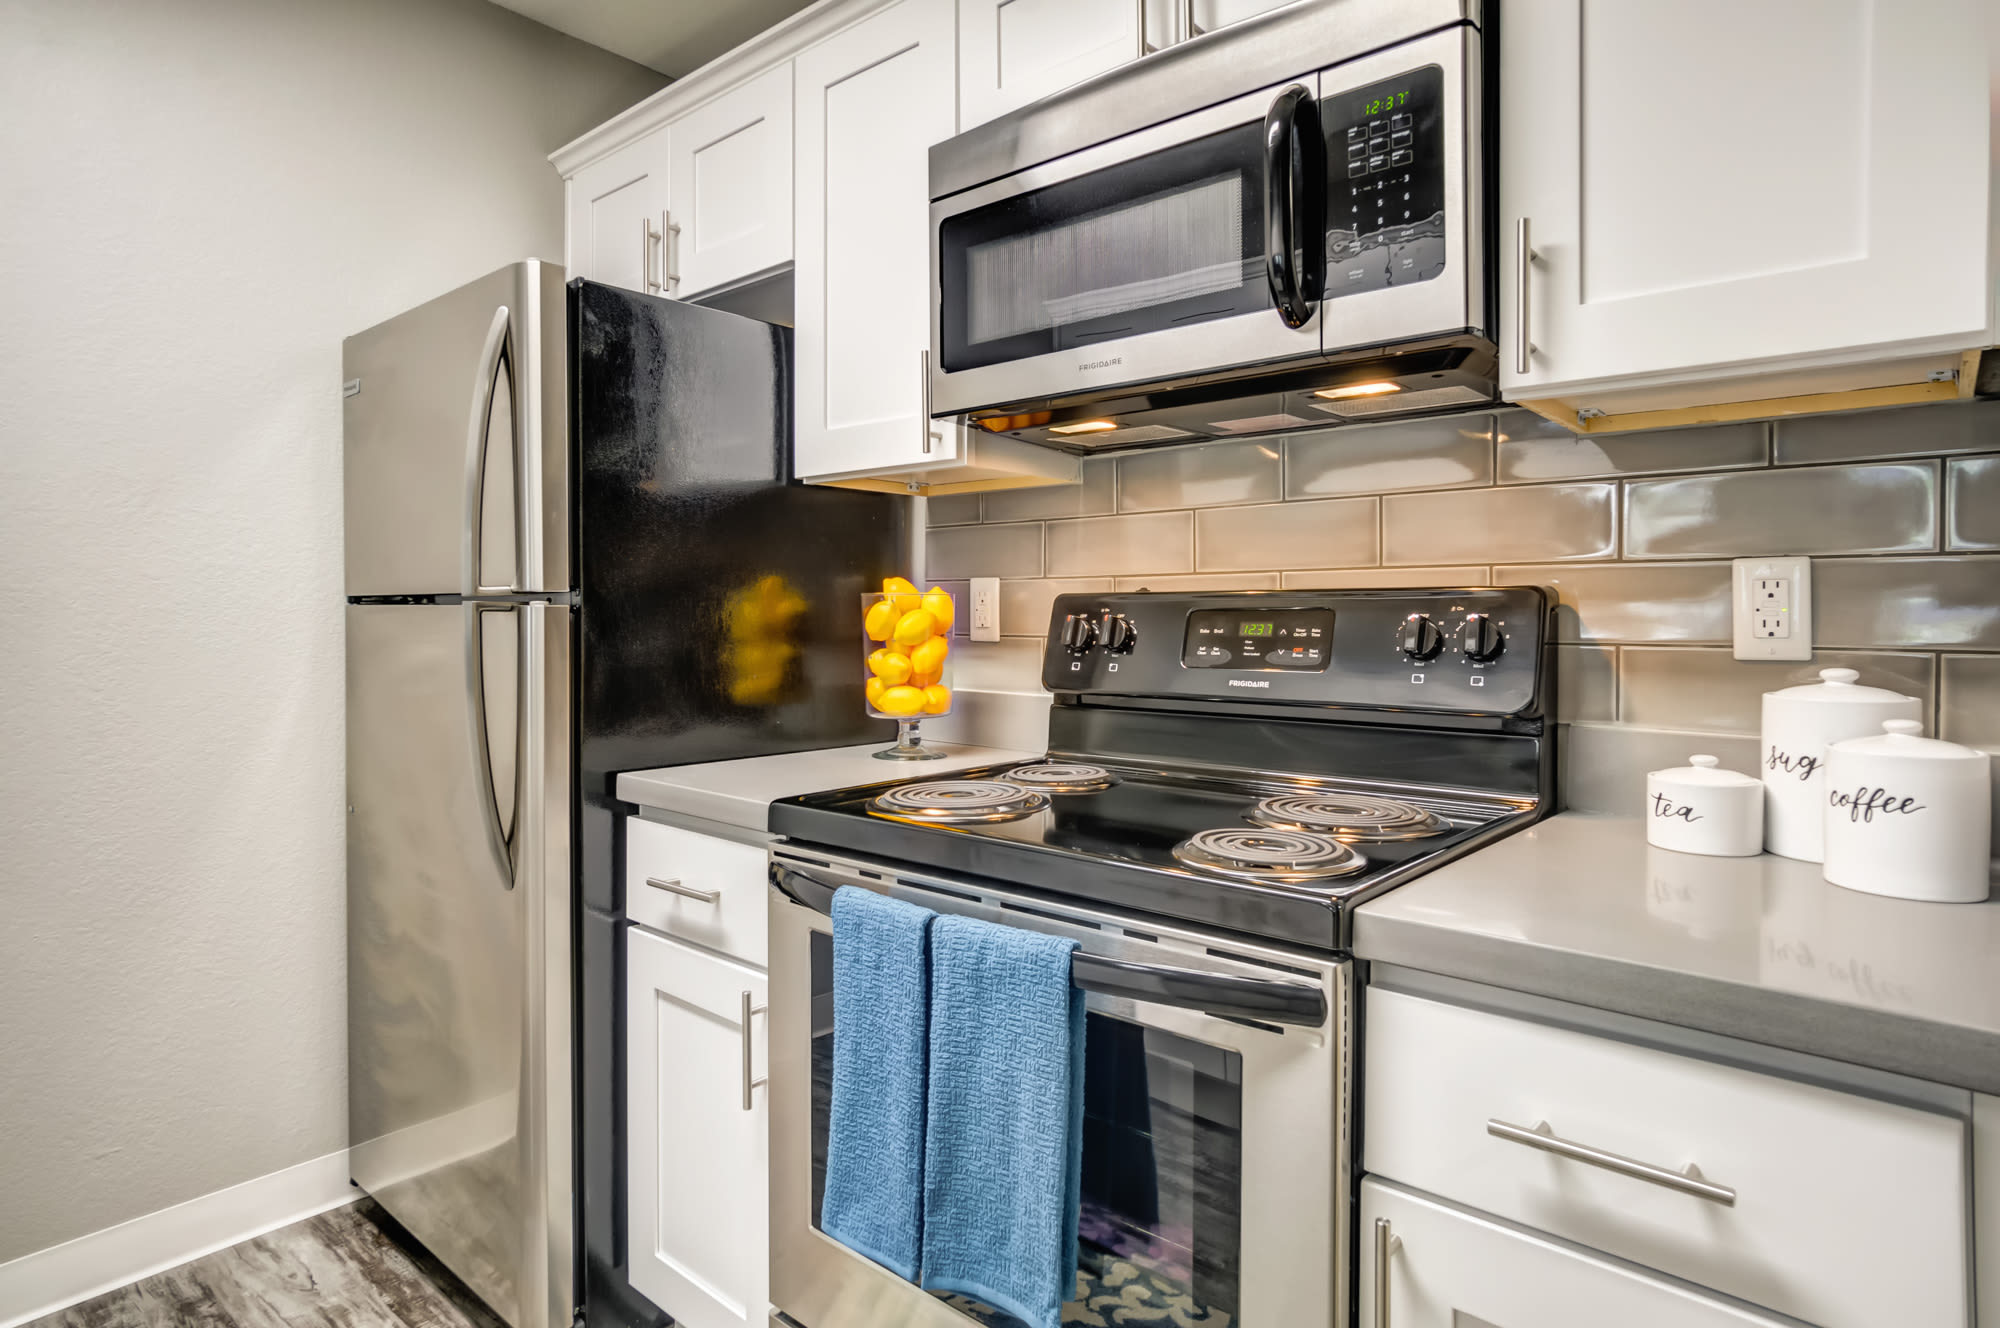 Kitchen at Serramonte Ridge Apartment Homes in Daly City,